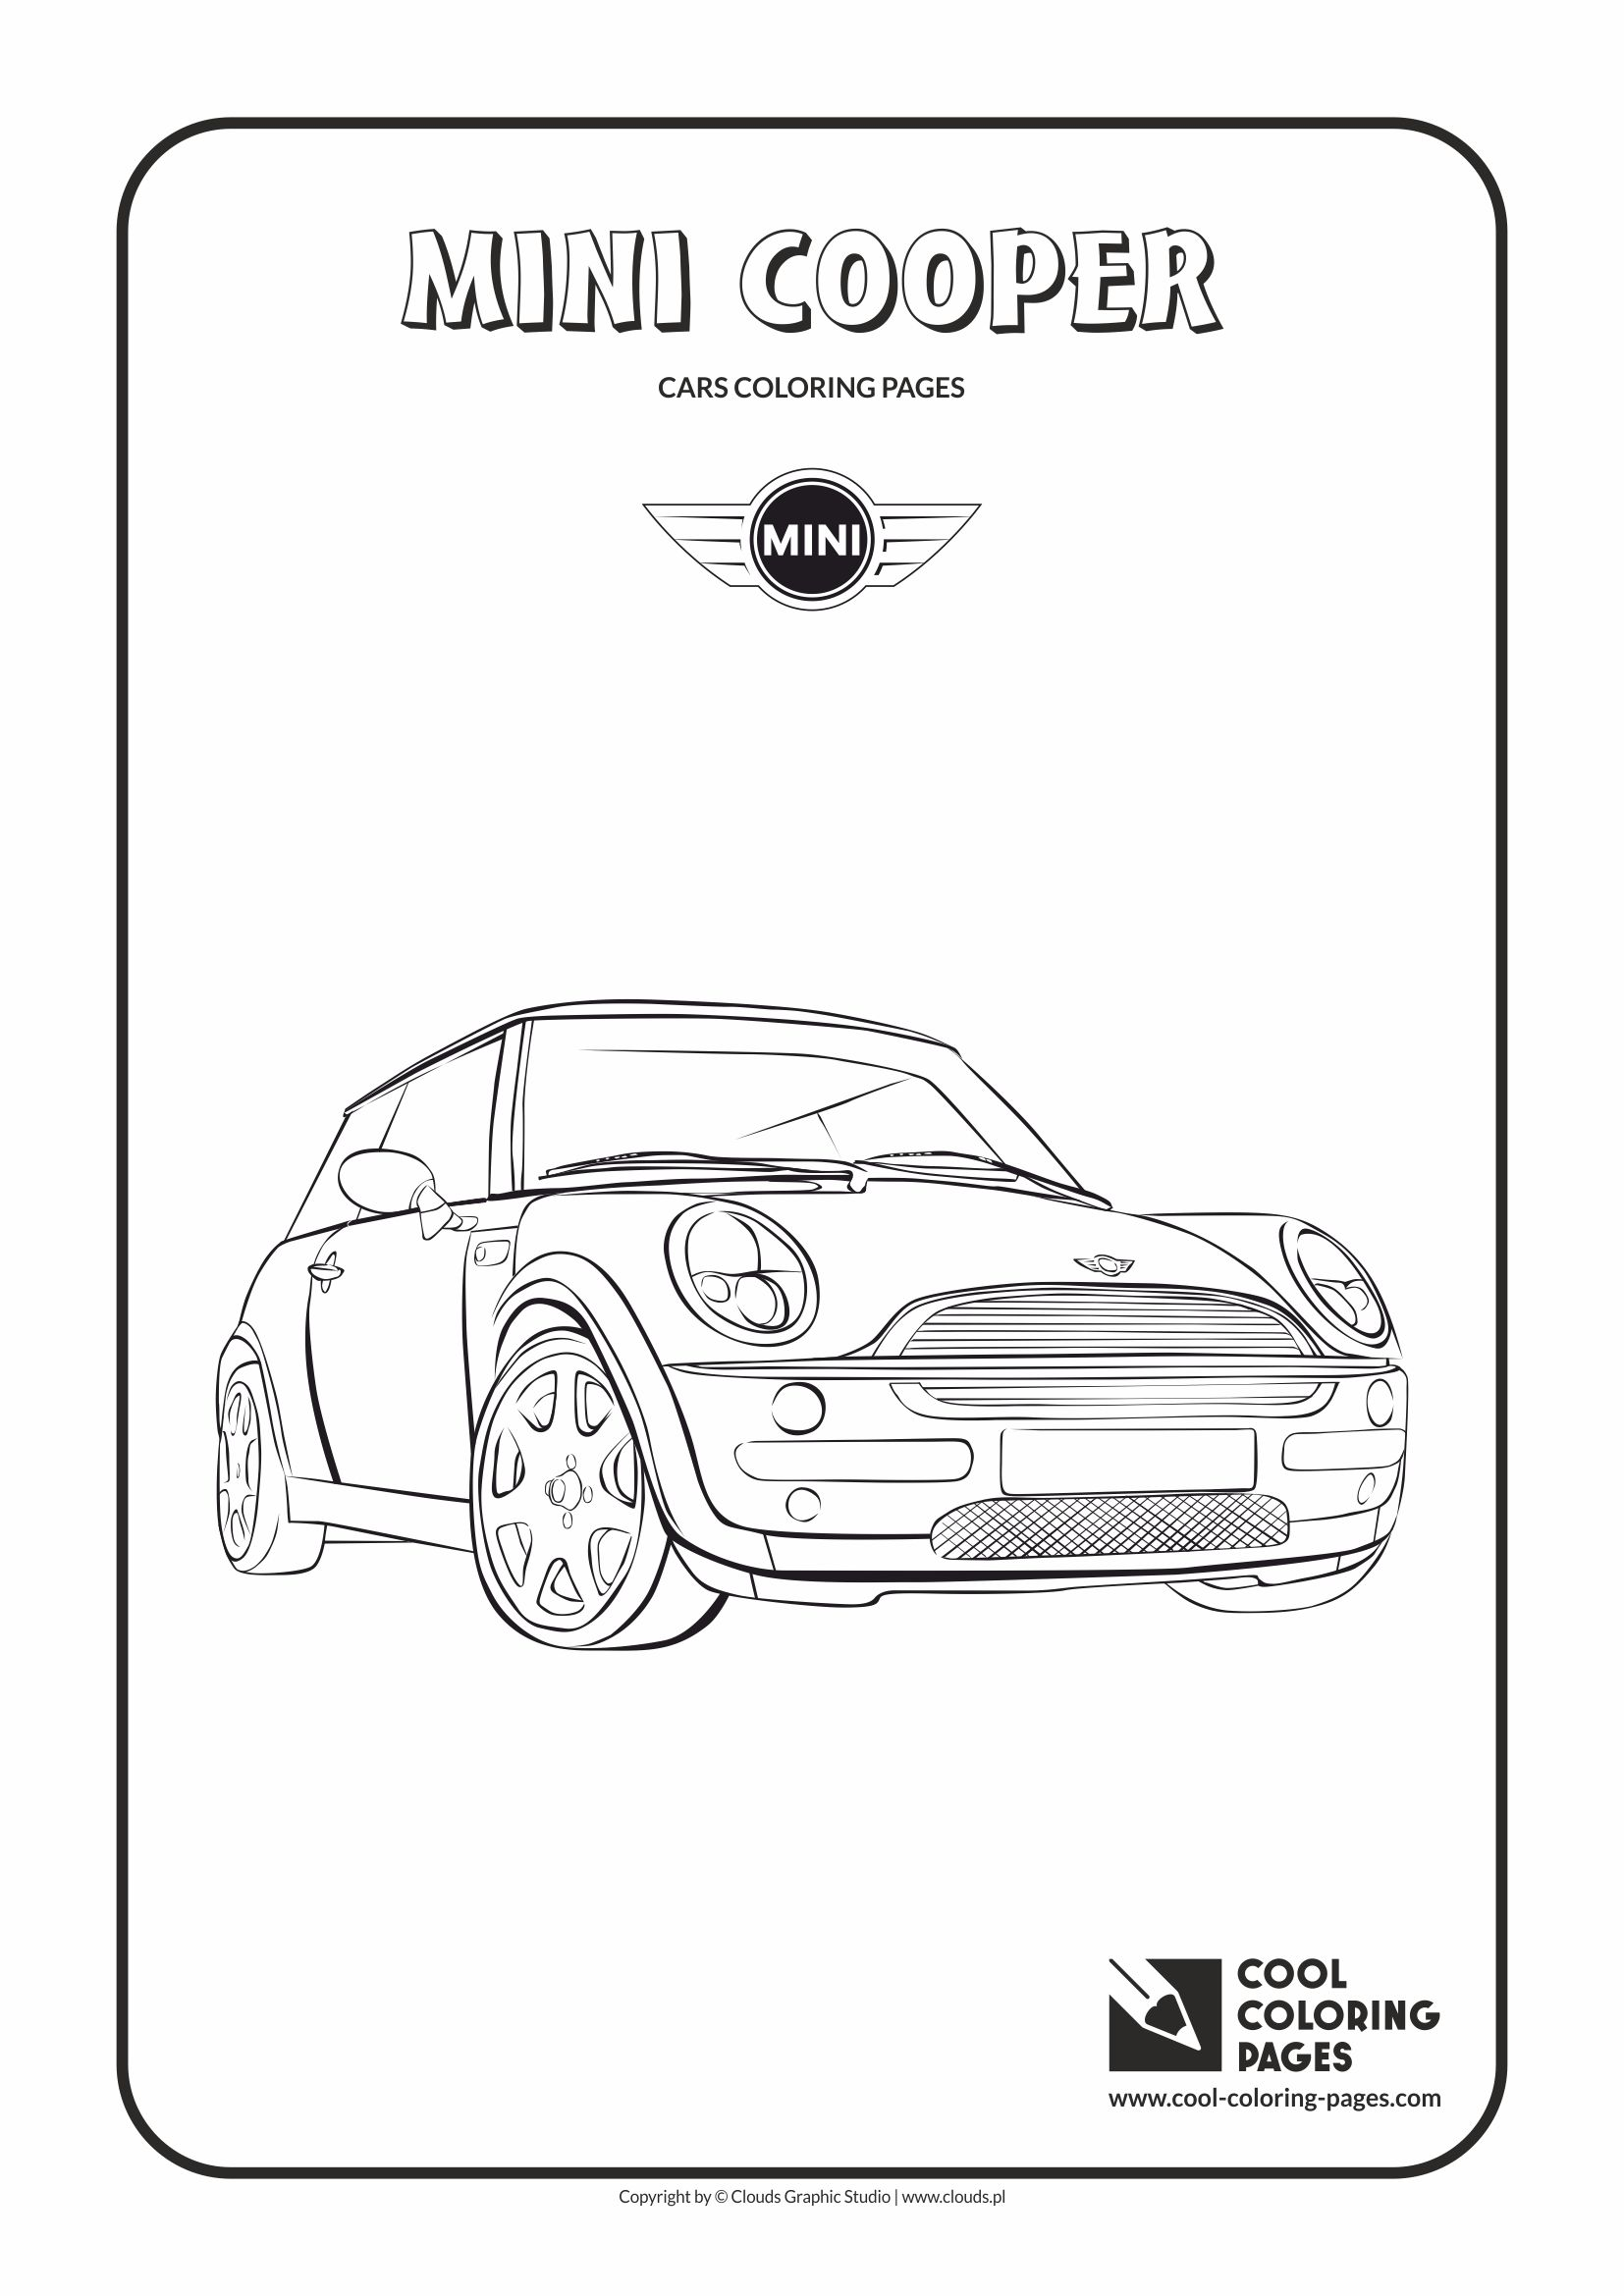 mini cooper coloring page cool coloring pages